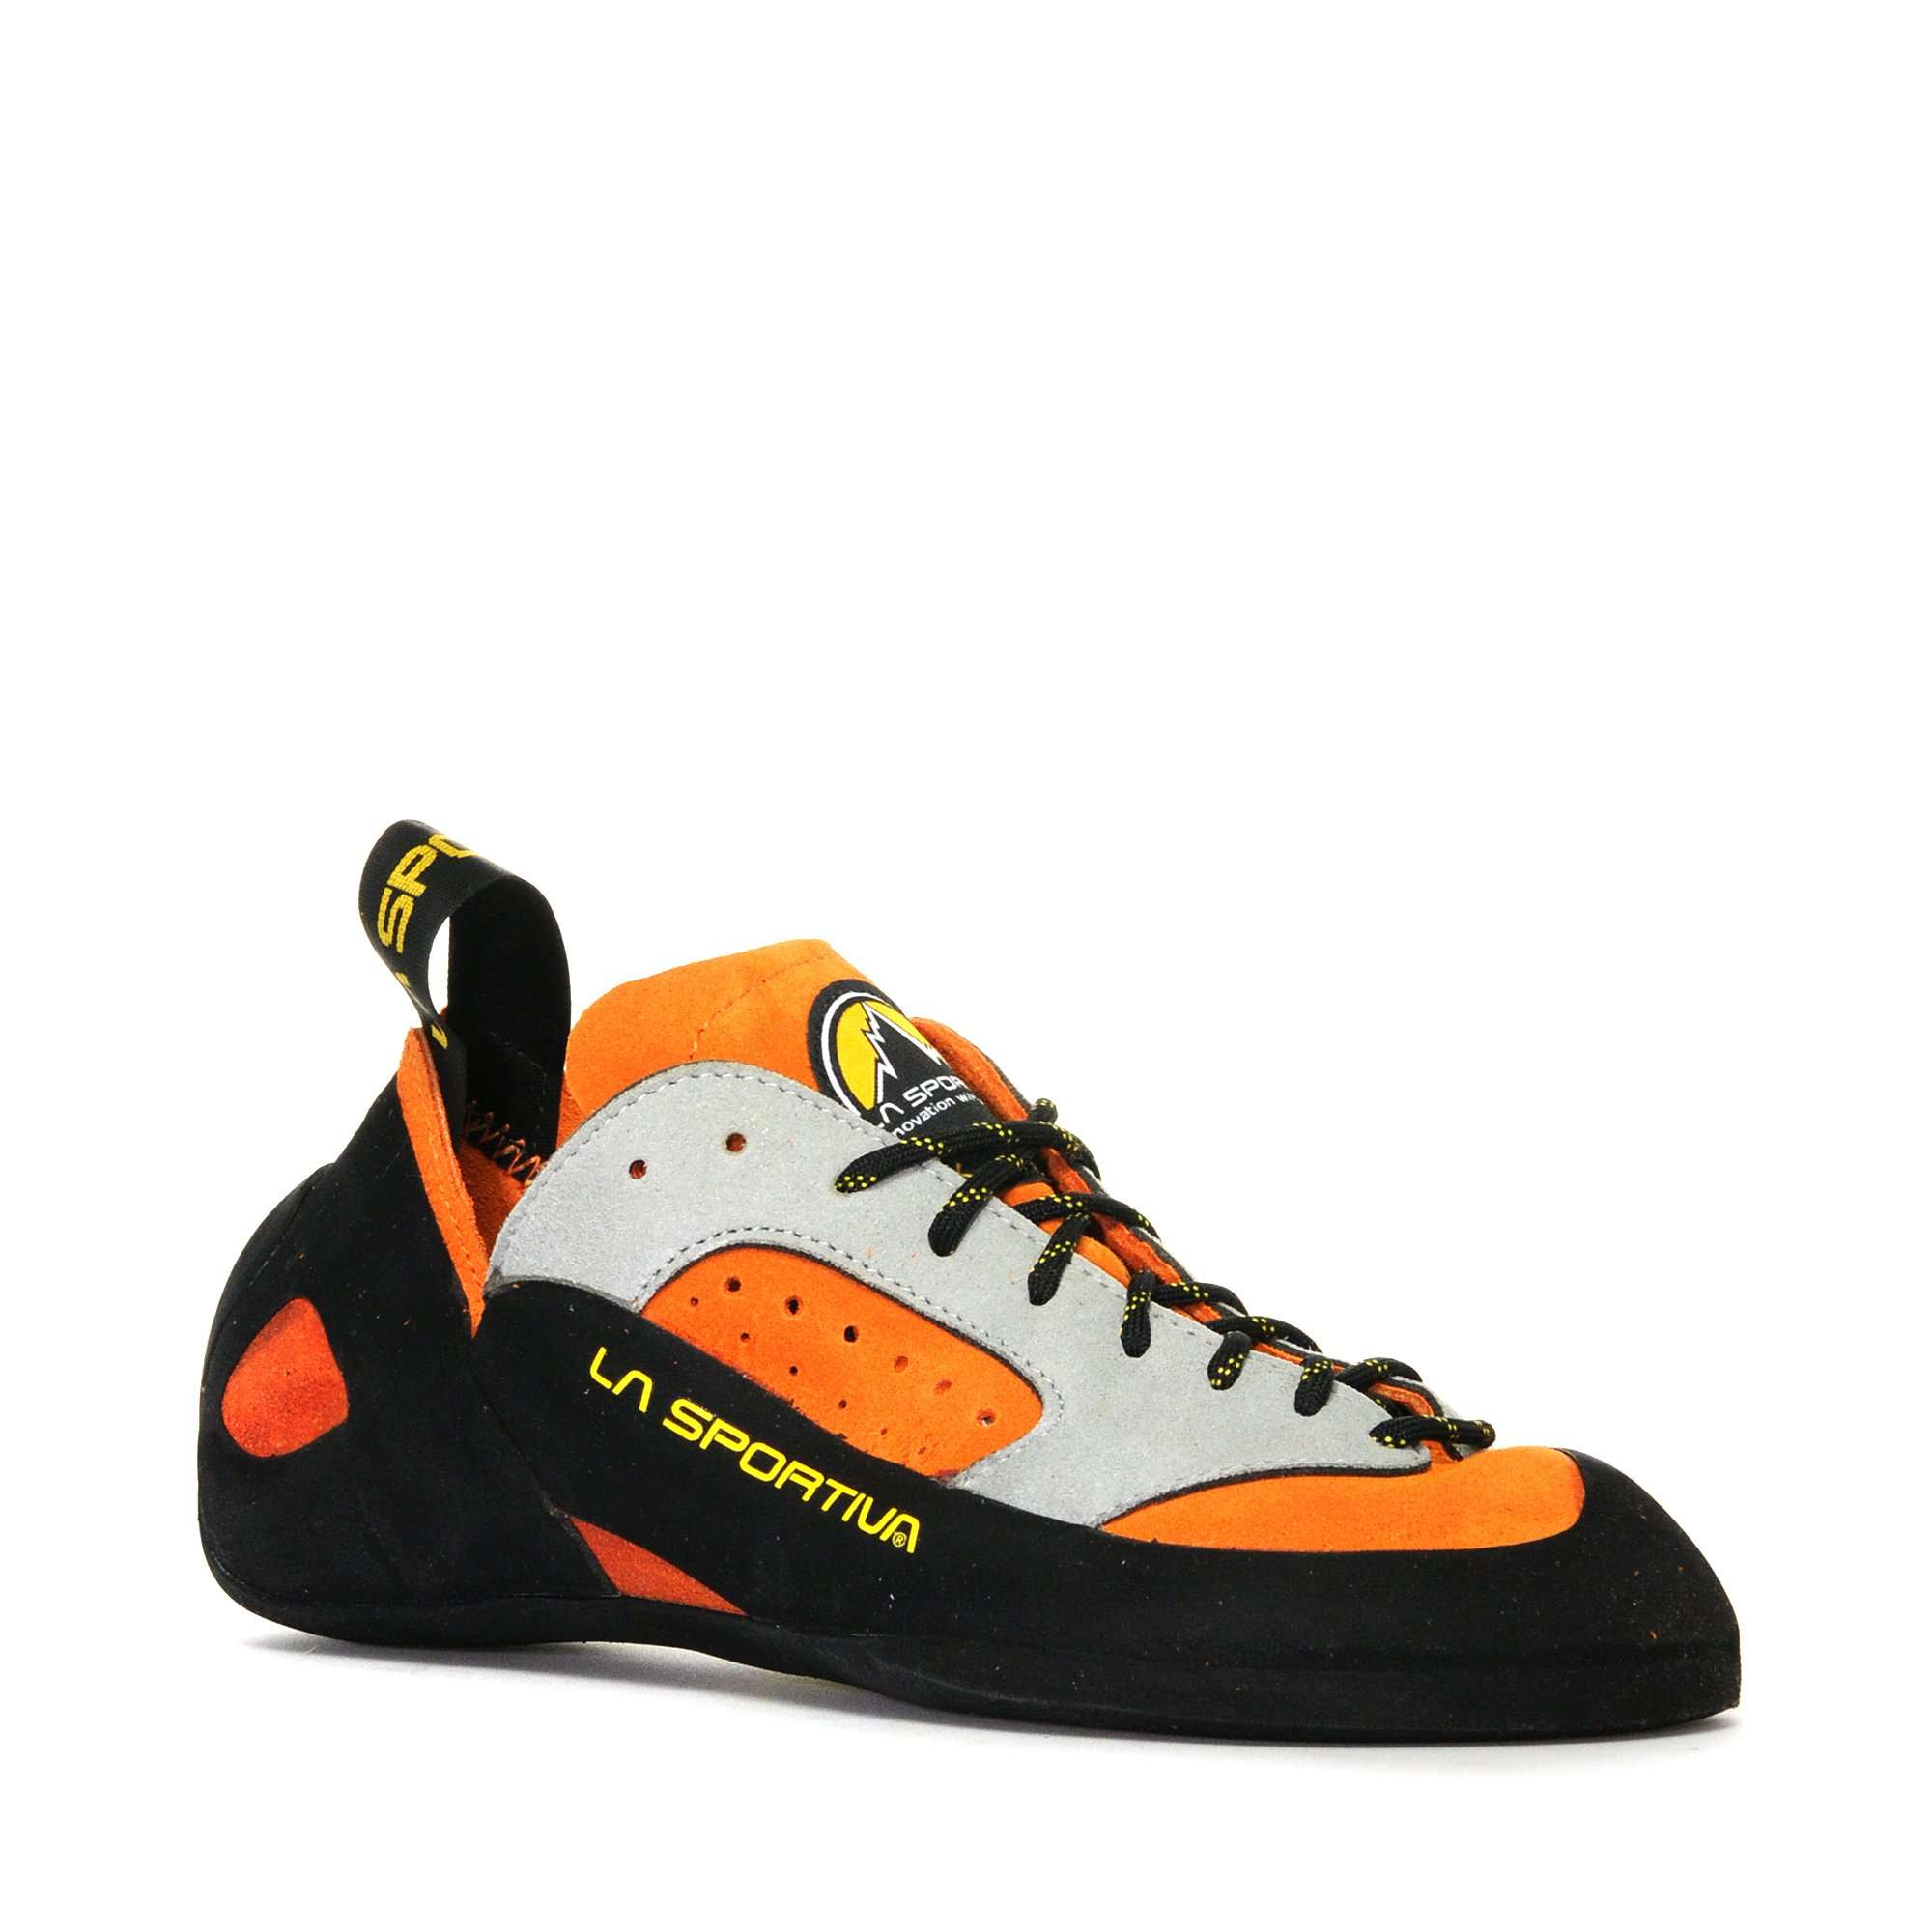 LA SPORTIVA Men's Jeckyl VS Climbing Shoe